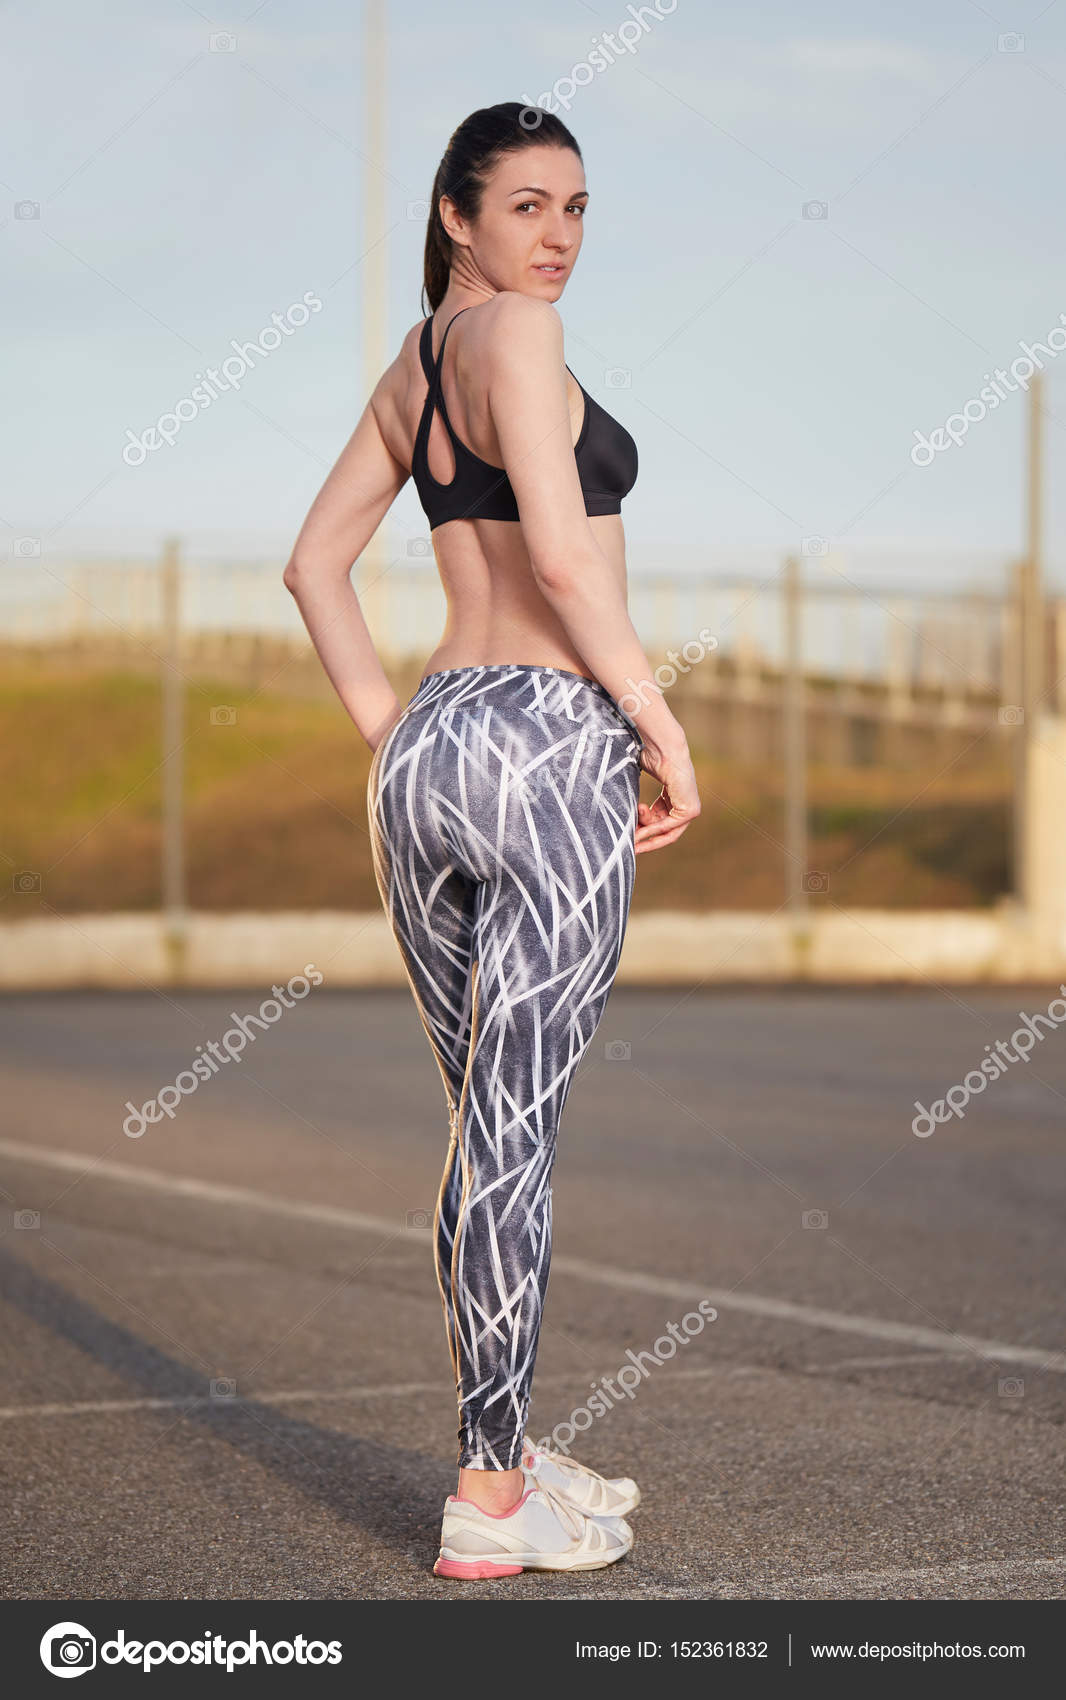 e98b0ddd42f02 Young female runner with perfect figure dressed in sport bra and shorts —  Stock Photo